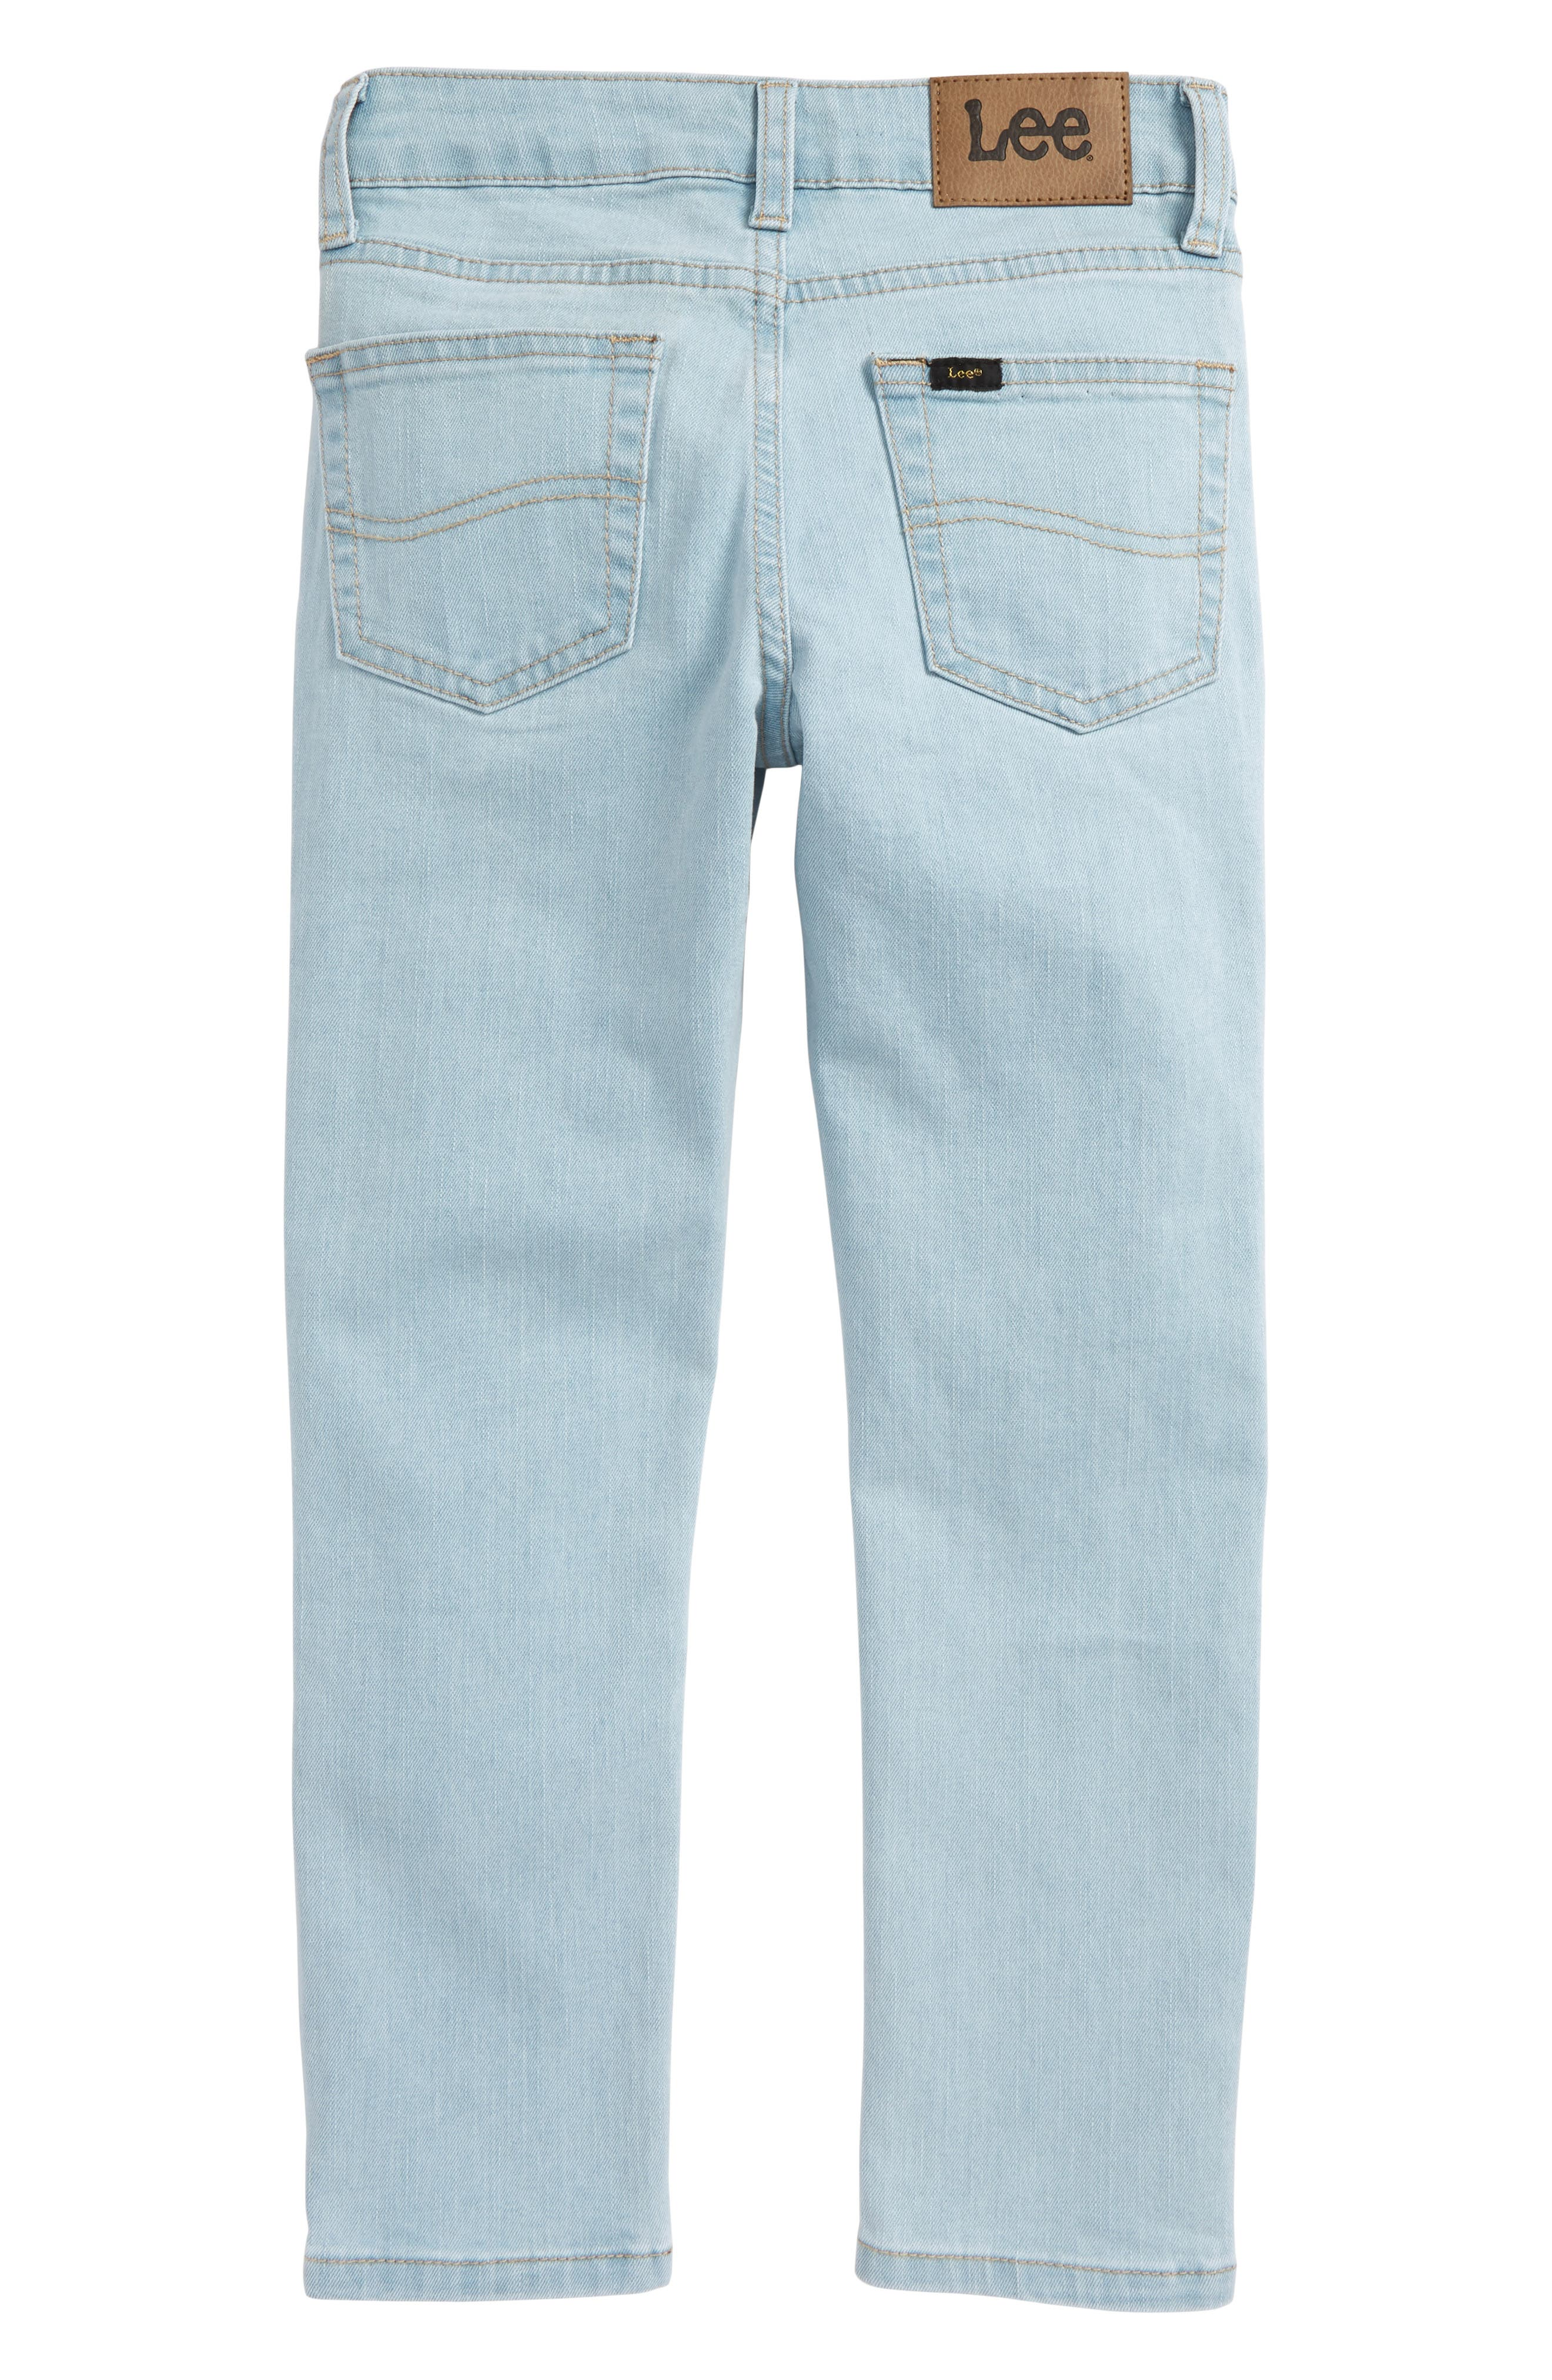 Skinny Fit Jeans,                             Alternate thumbnail 2, color,                             Waterfall